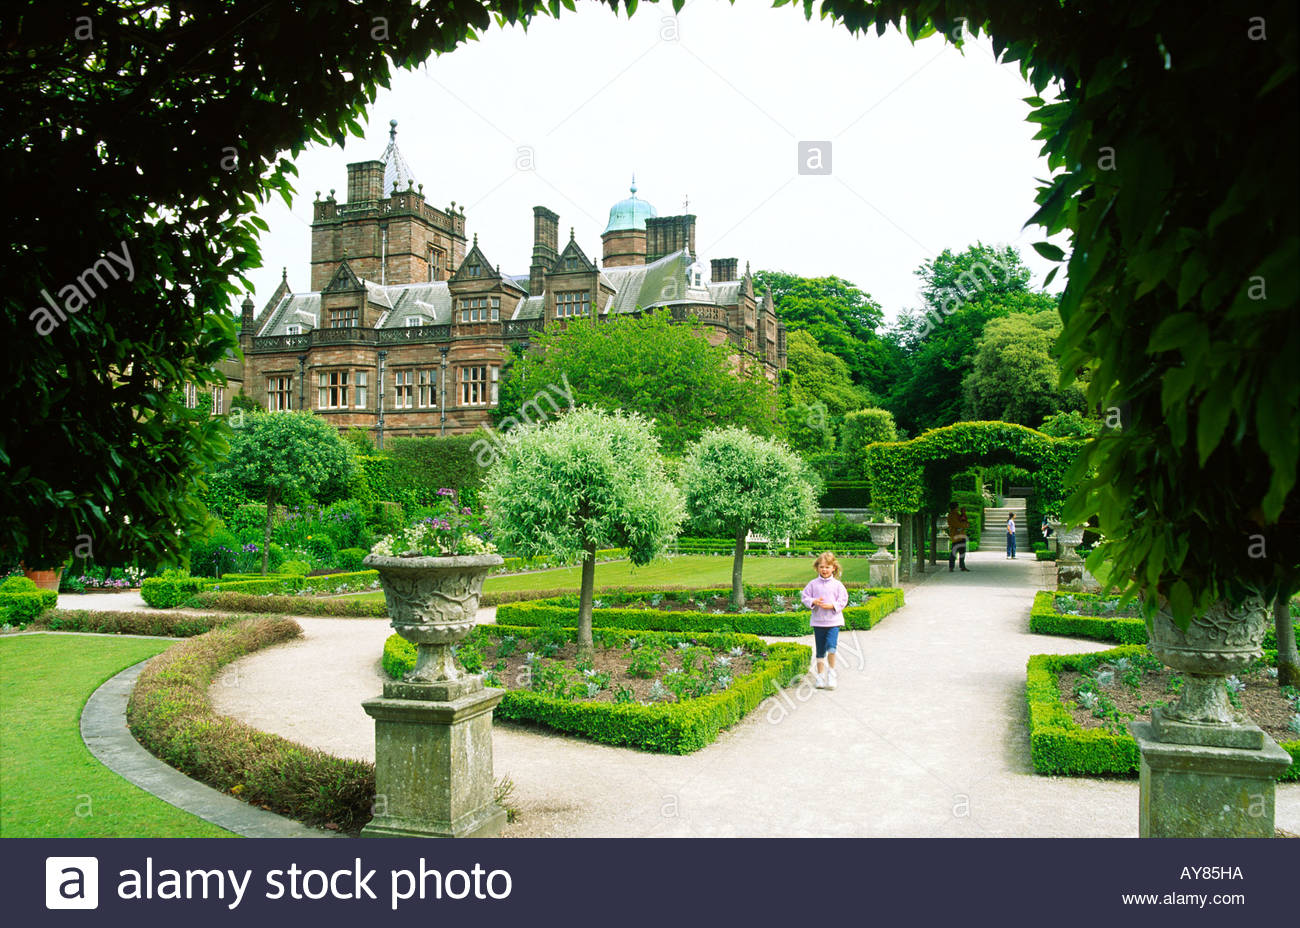 cavendish family stock photos cavendish family stock images alamy holker hall and gardens the cavendish family stately home estate near cartmel and grange in